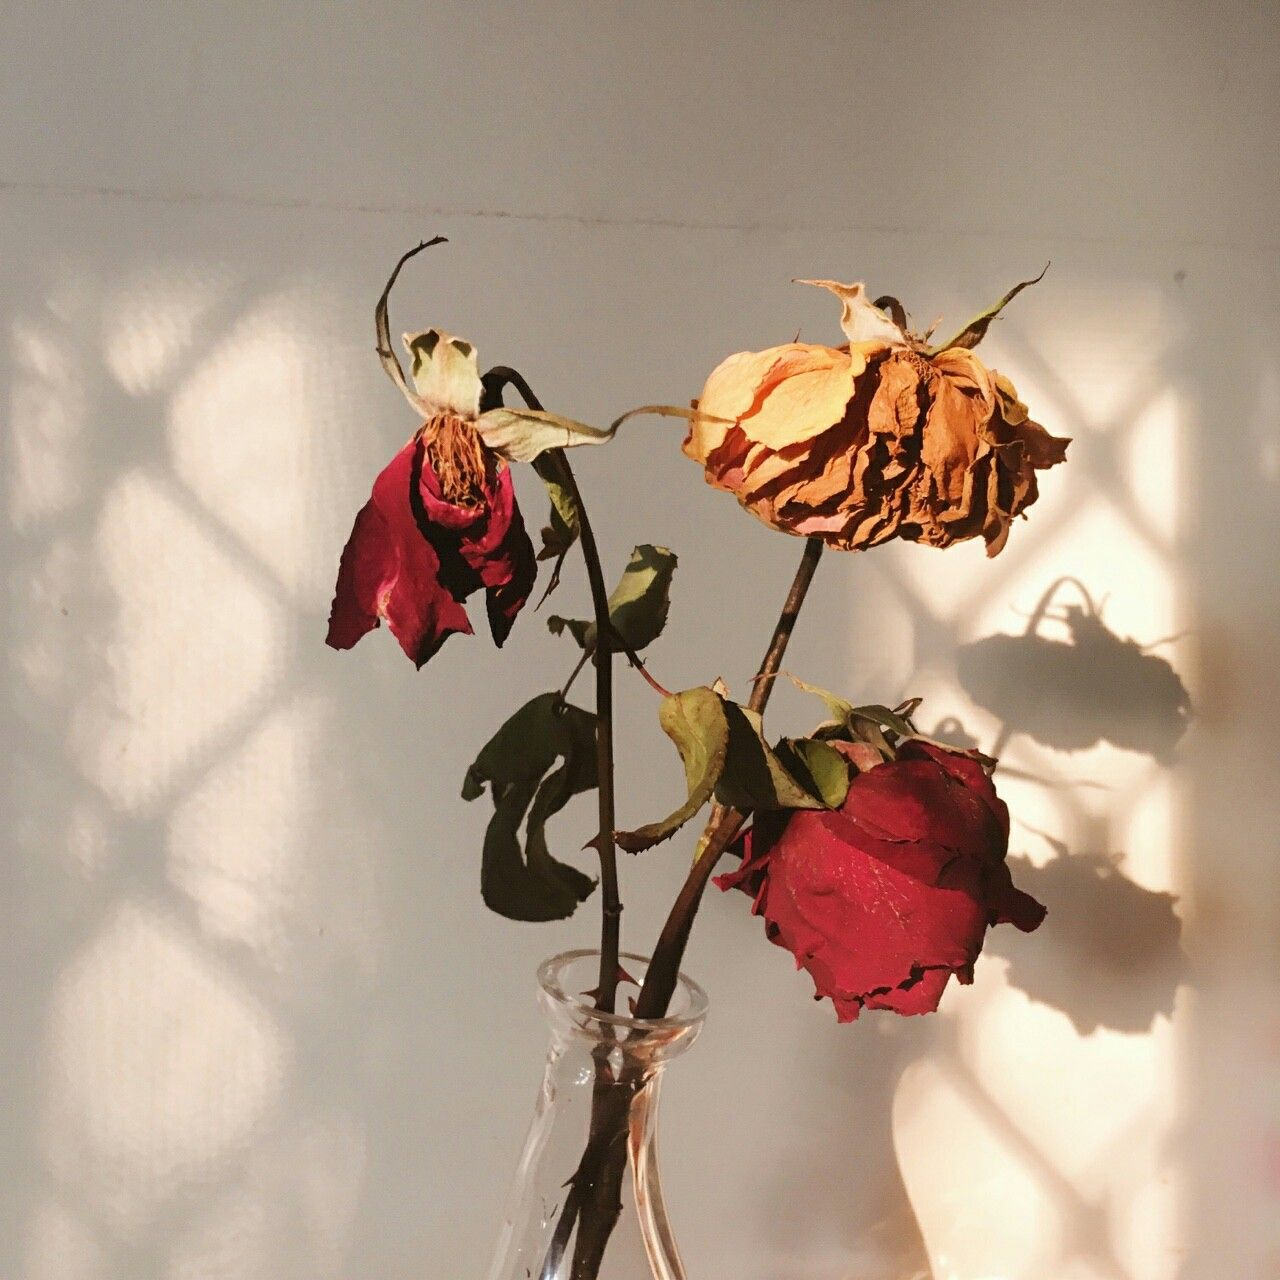 Freyahaley Pics Of Wilting Roses In My Room At Golden Hour